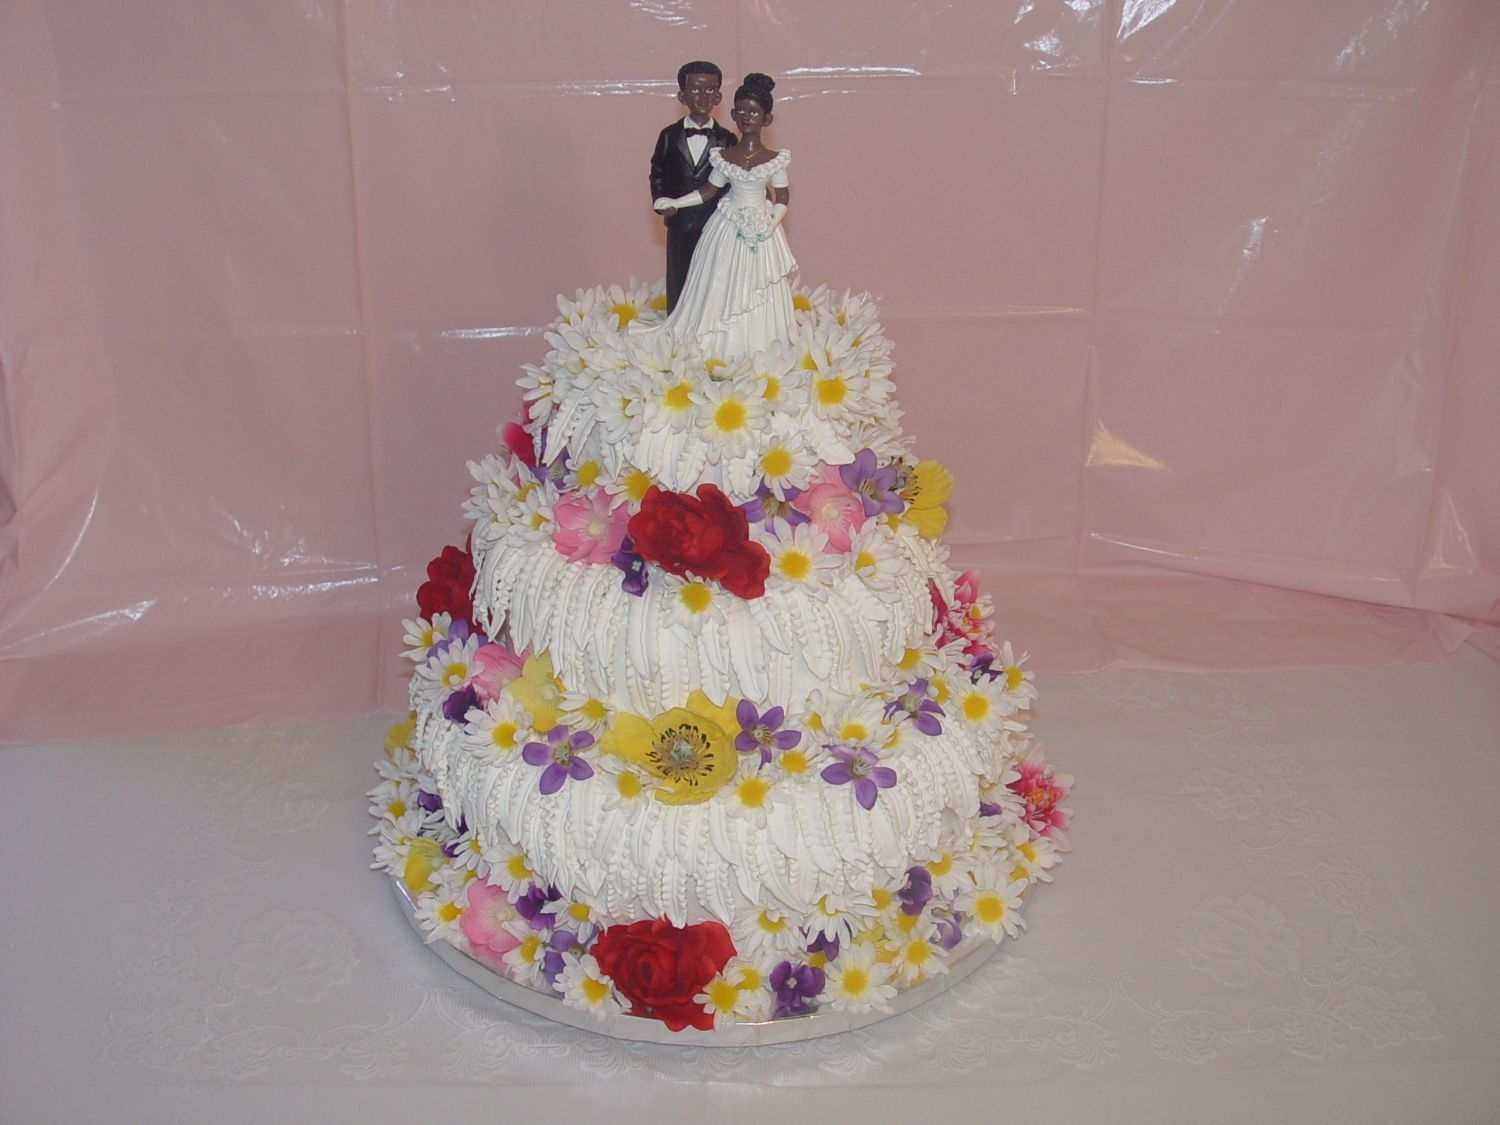 Multi Flower Wedding Cake   Leaves are made with royal icing. the bride want something different. what do you think.